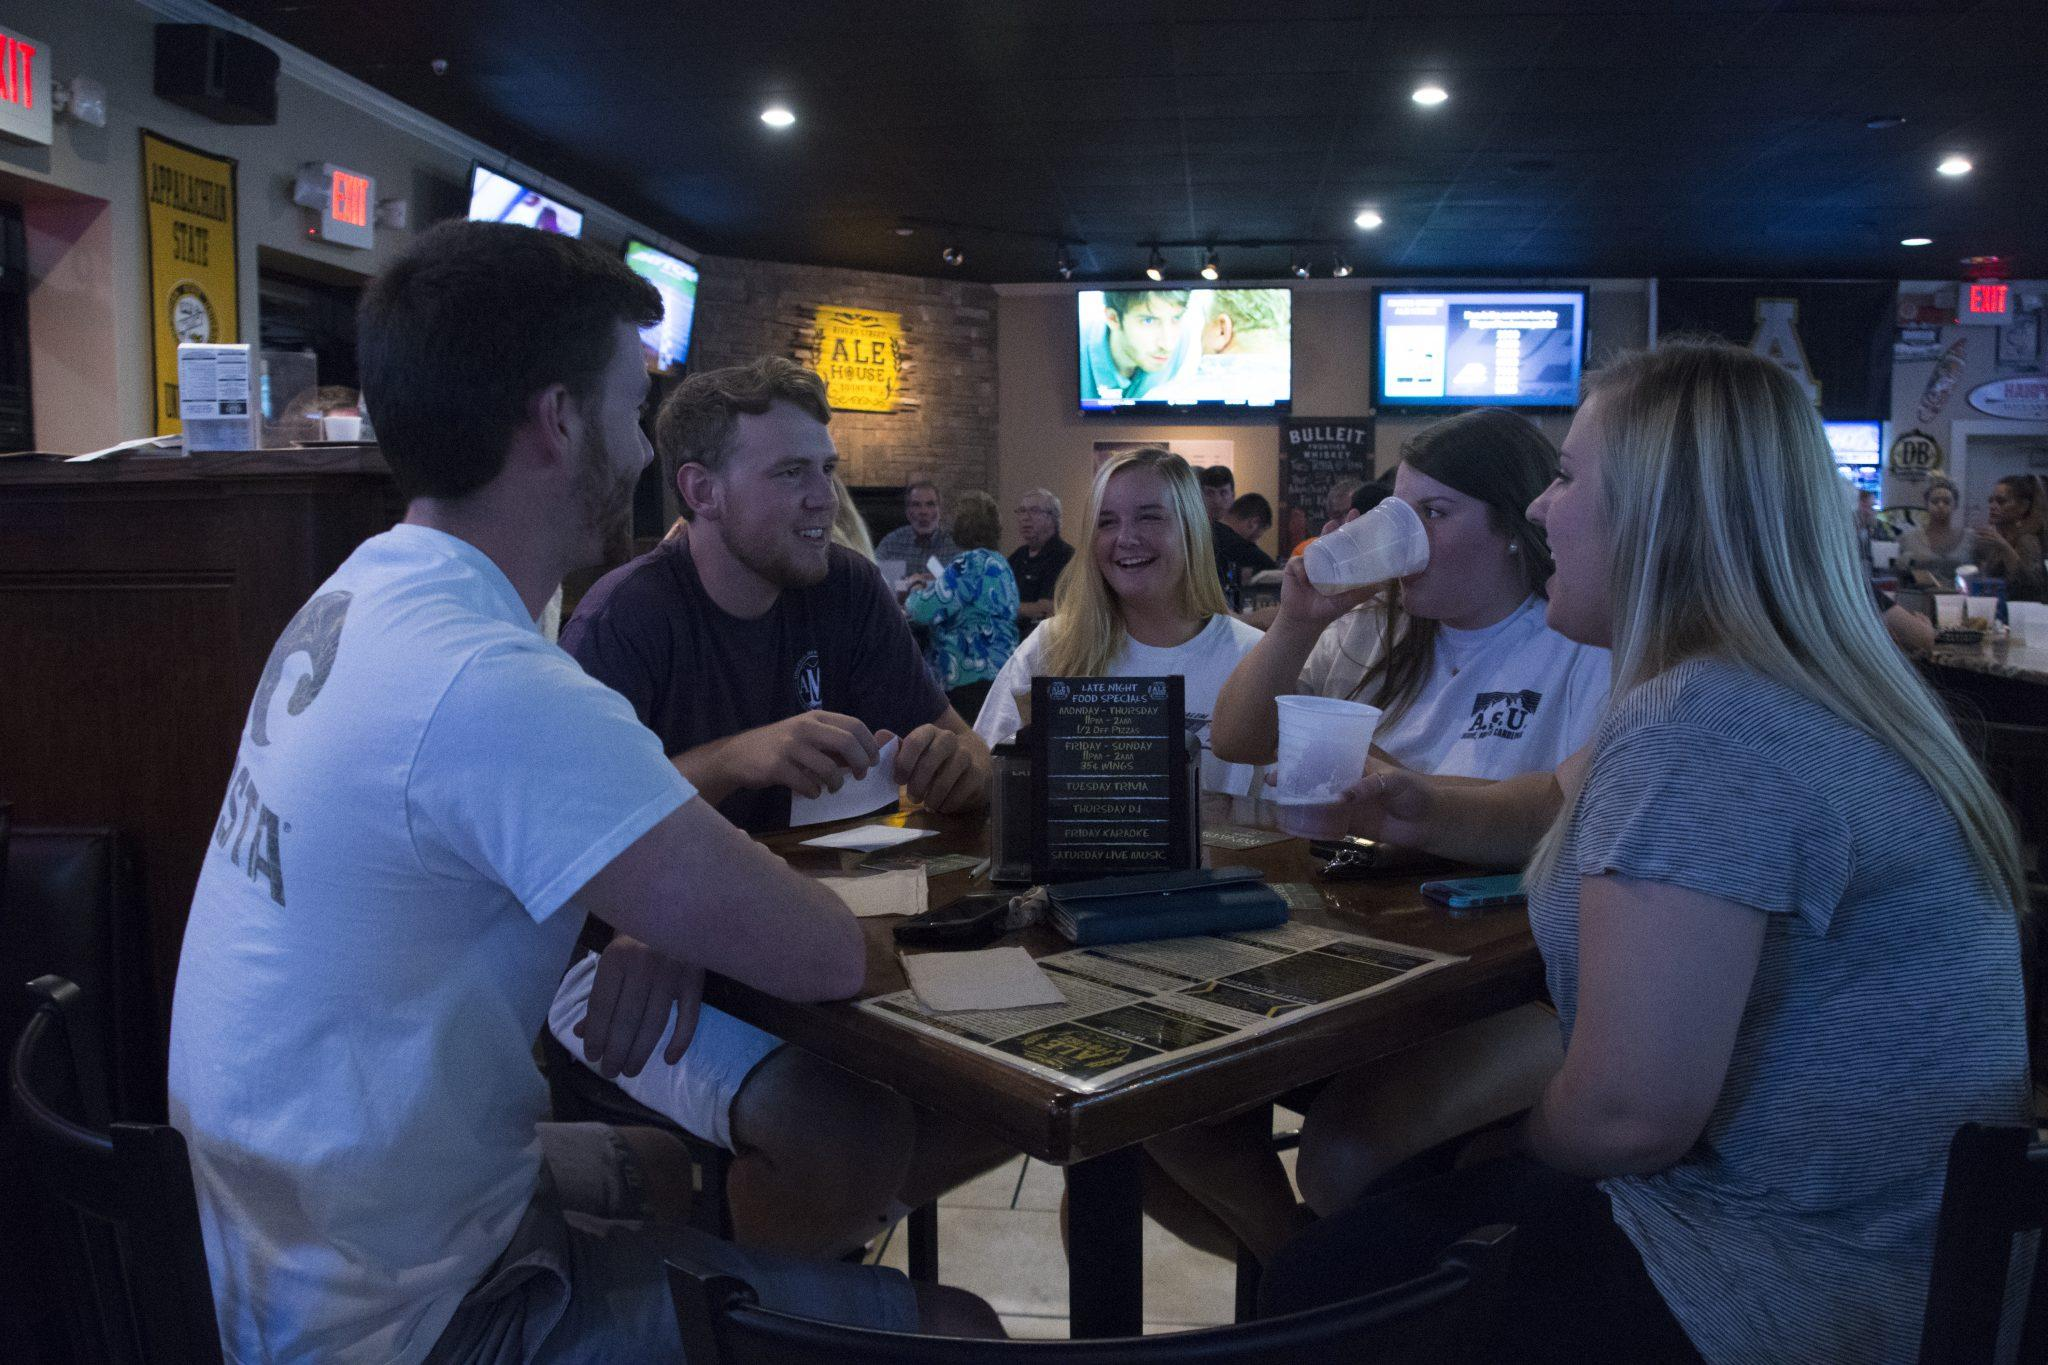 Chris+Deal%2C+Drew+McCarty%2C+Mackenzie+Reid%2C+Hannah+Seipel+and+Sarah+Winter+form+a+group+for+trivia+night+at+Rivers+Street+Ale+House.